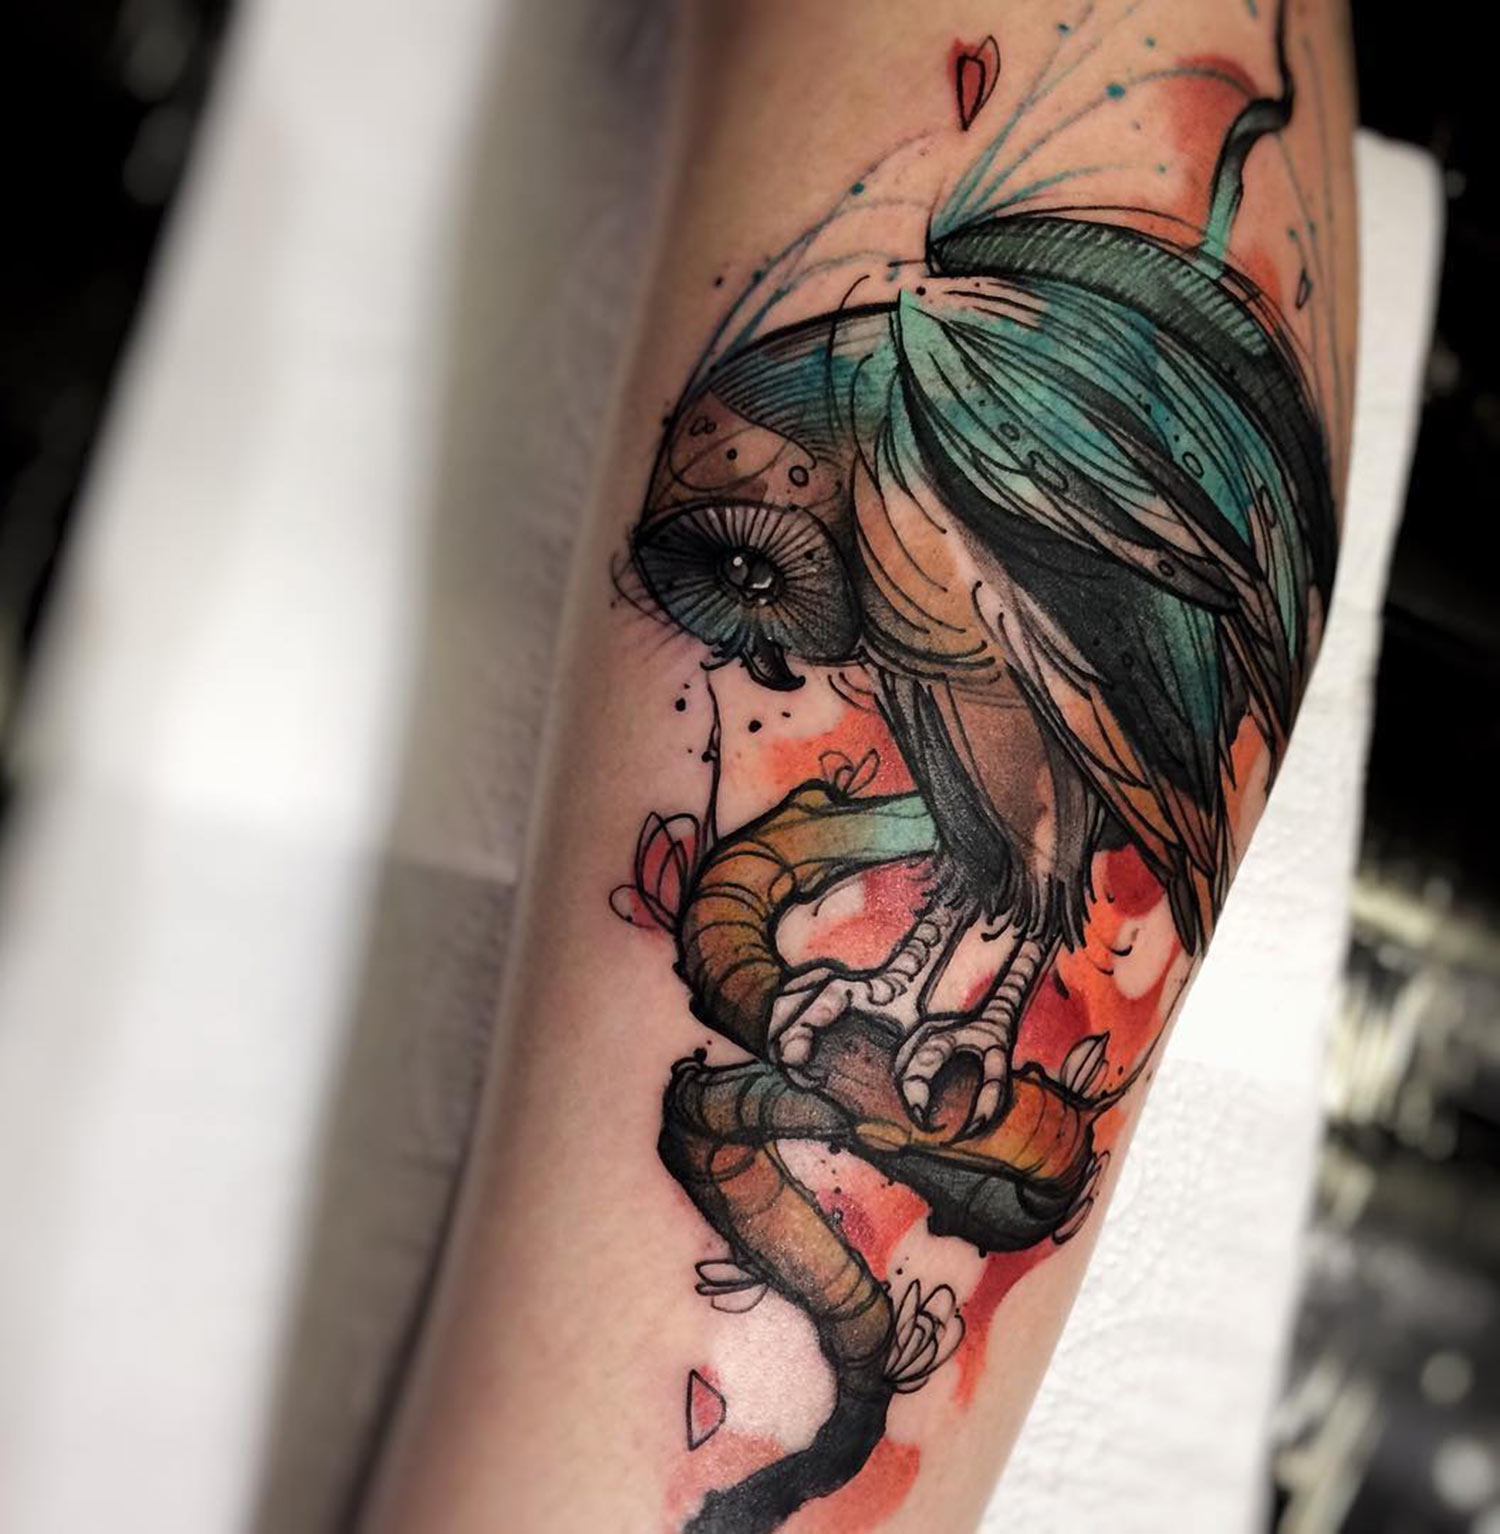 Tattoo by Felipe Rodrigues